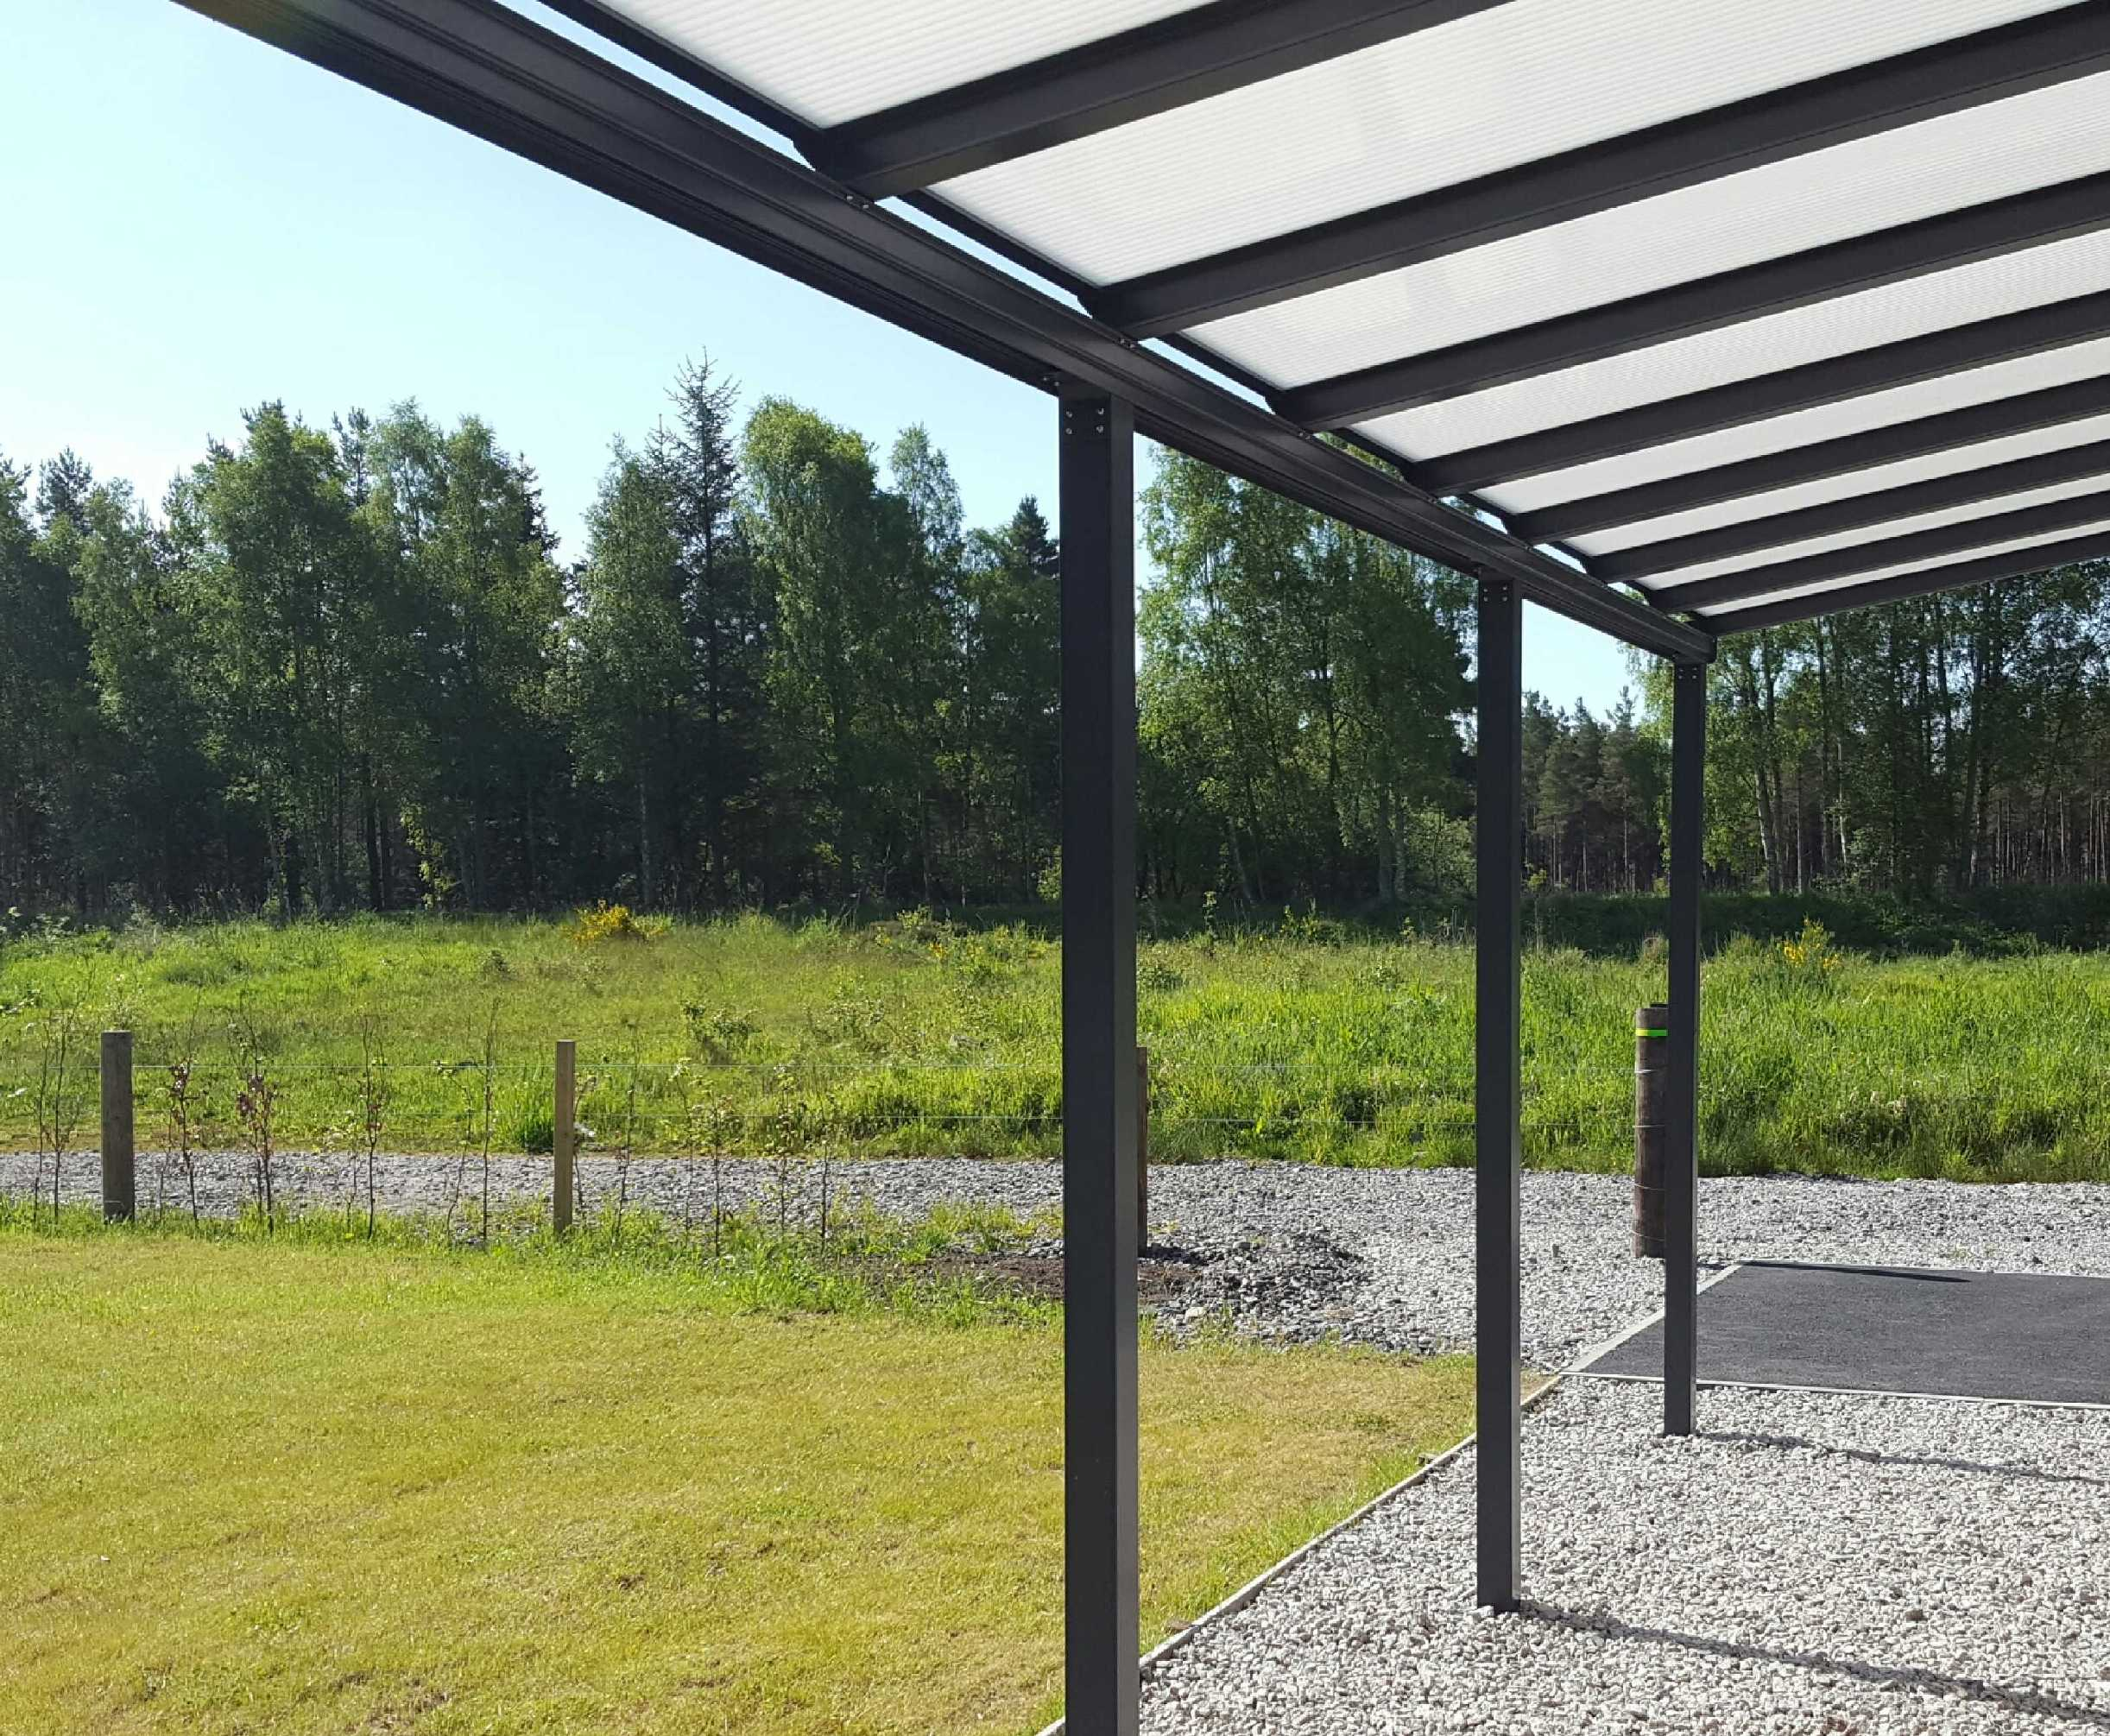 Omega Smart Lean-To Canopy, Anthracite Grey, 16mm Polycarbonate Glazing - 3.1m (W) x 1.5m (P), (2) Supporting Posts